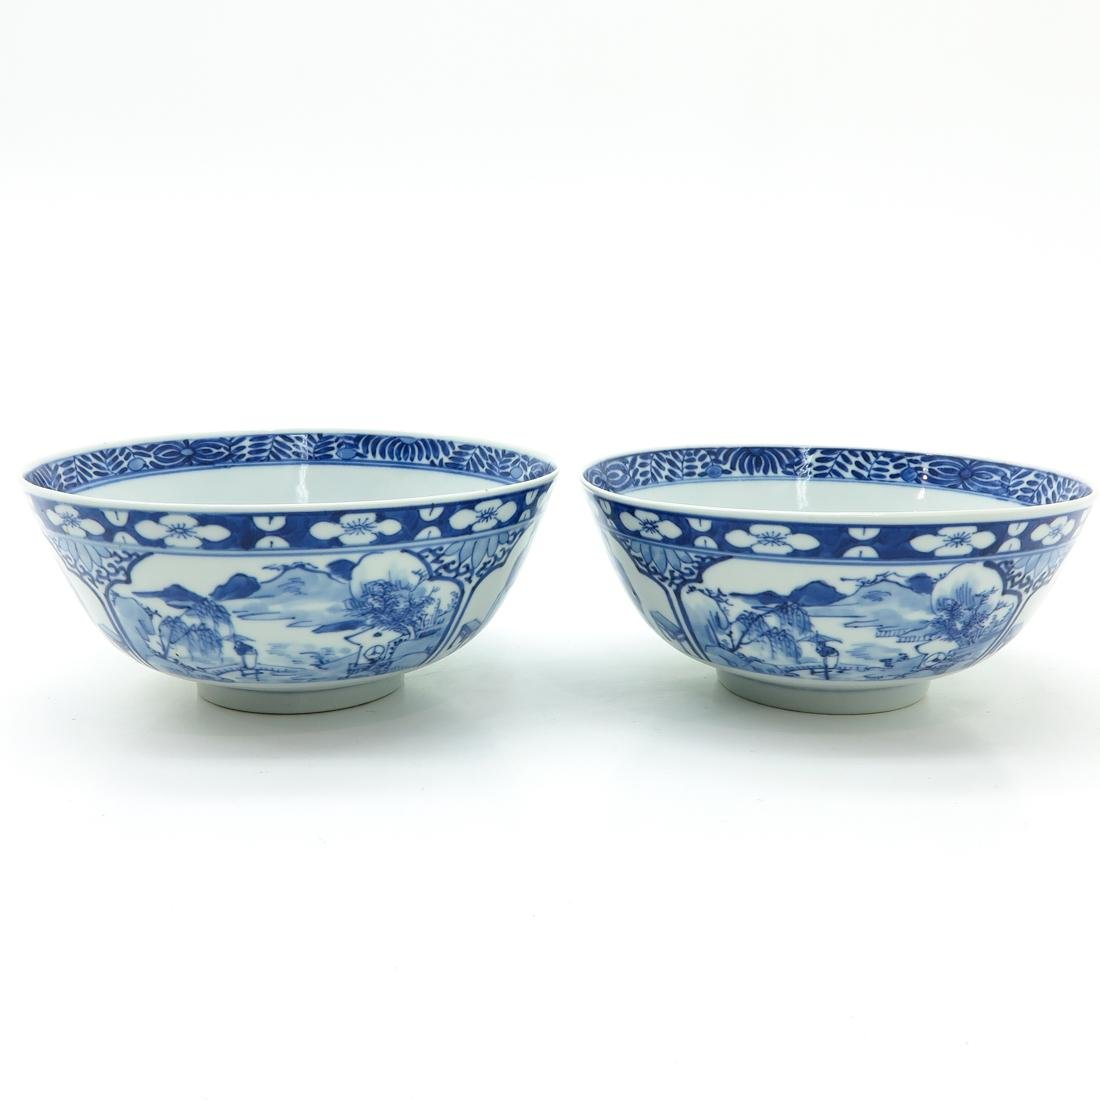 Lot of 2 Bowls - 4